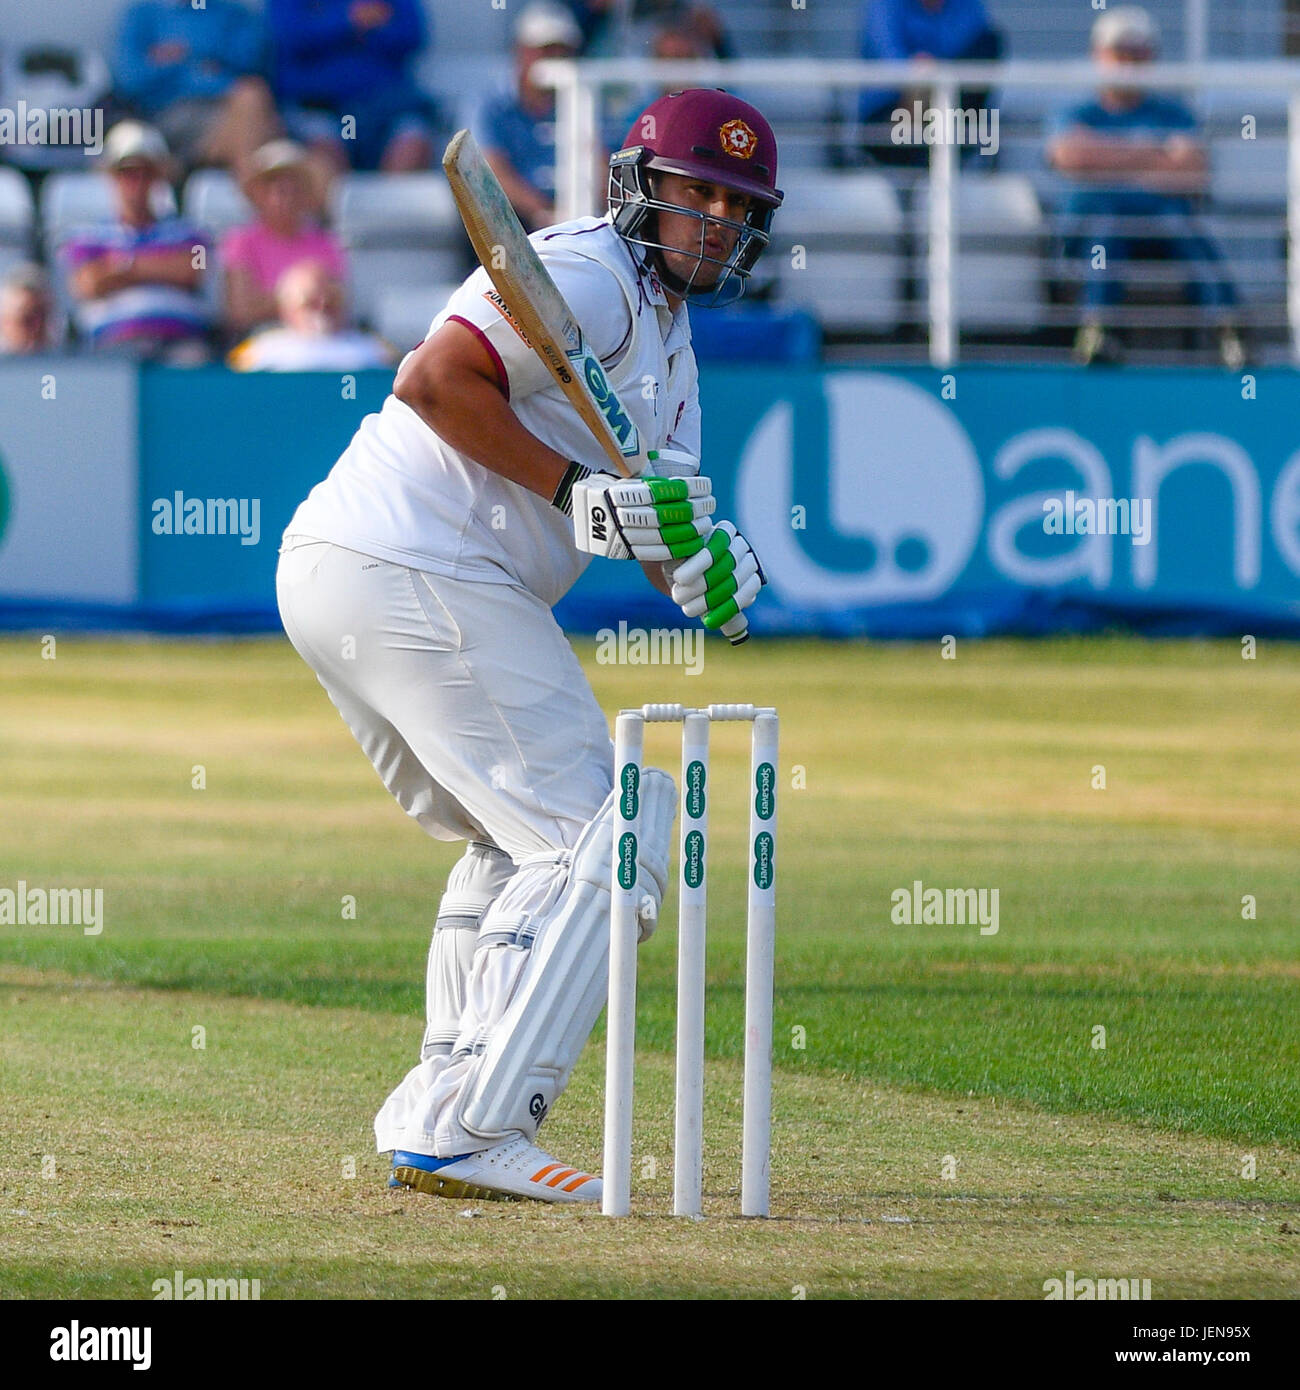 Northampton, UK. 26th June, 2017. Roy  Kleinveldt  bats for Northamptonshire    during the Specsavers County Championship Stock Photo